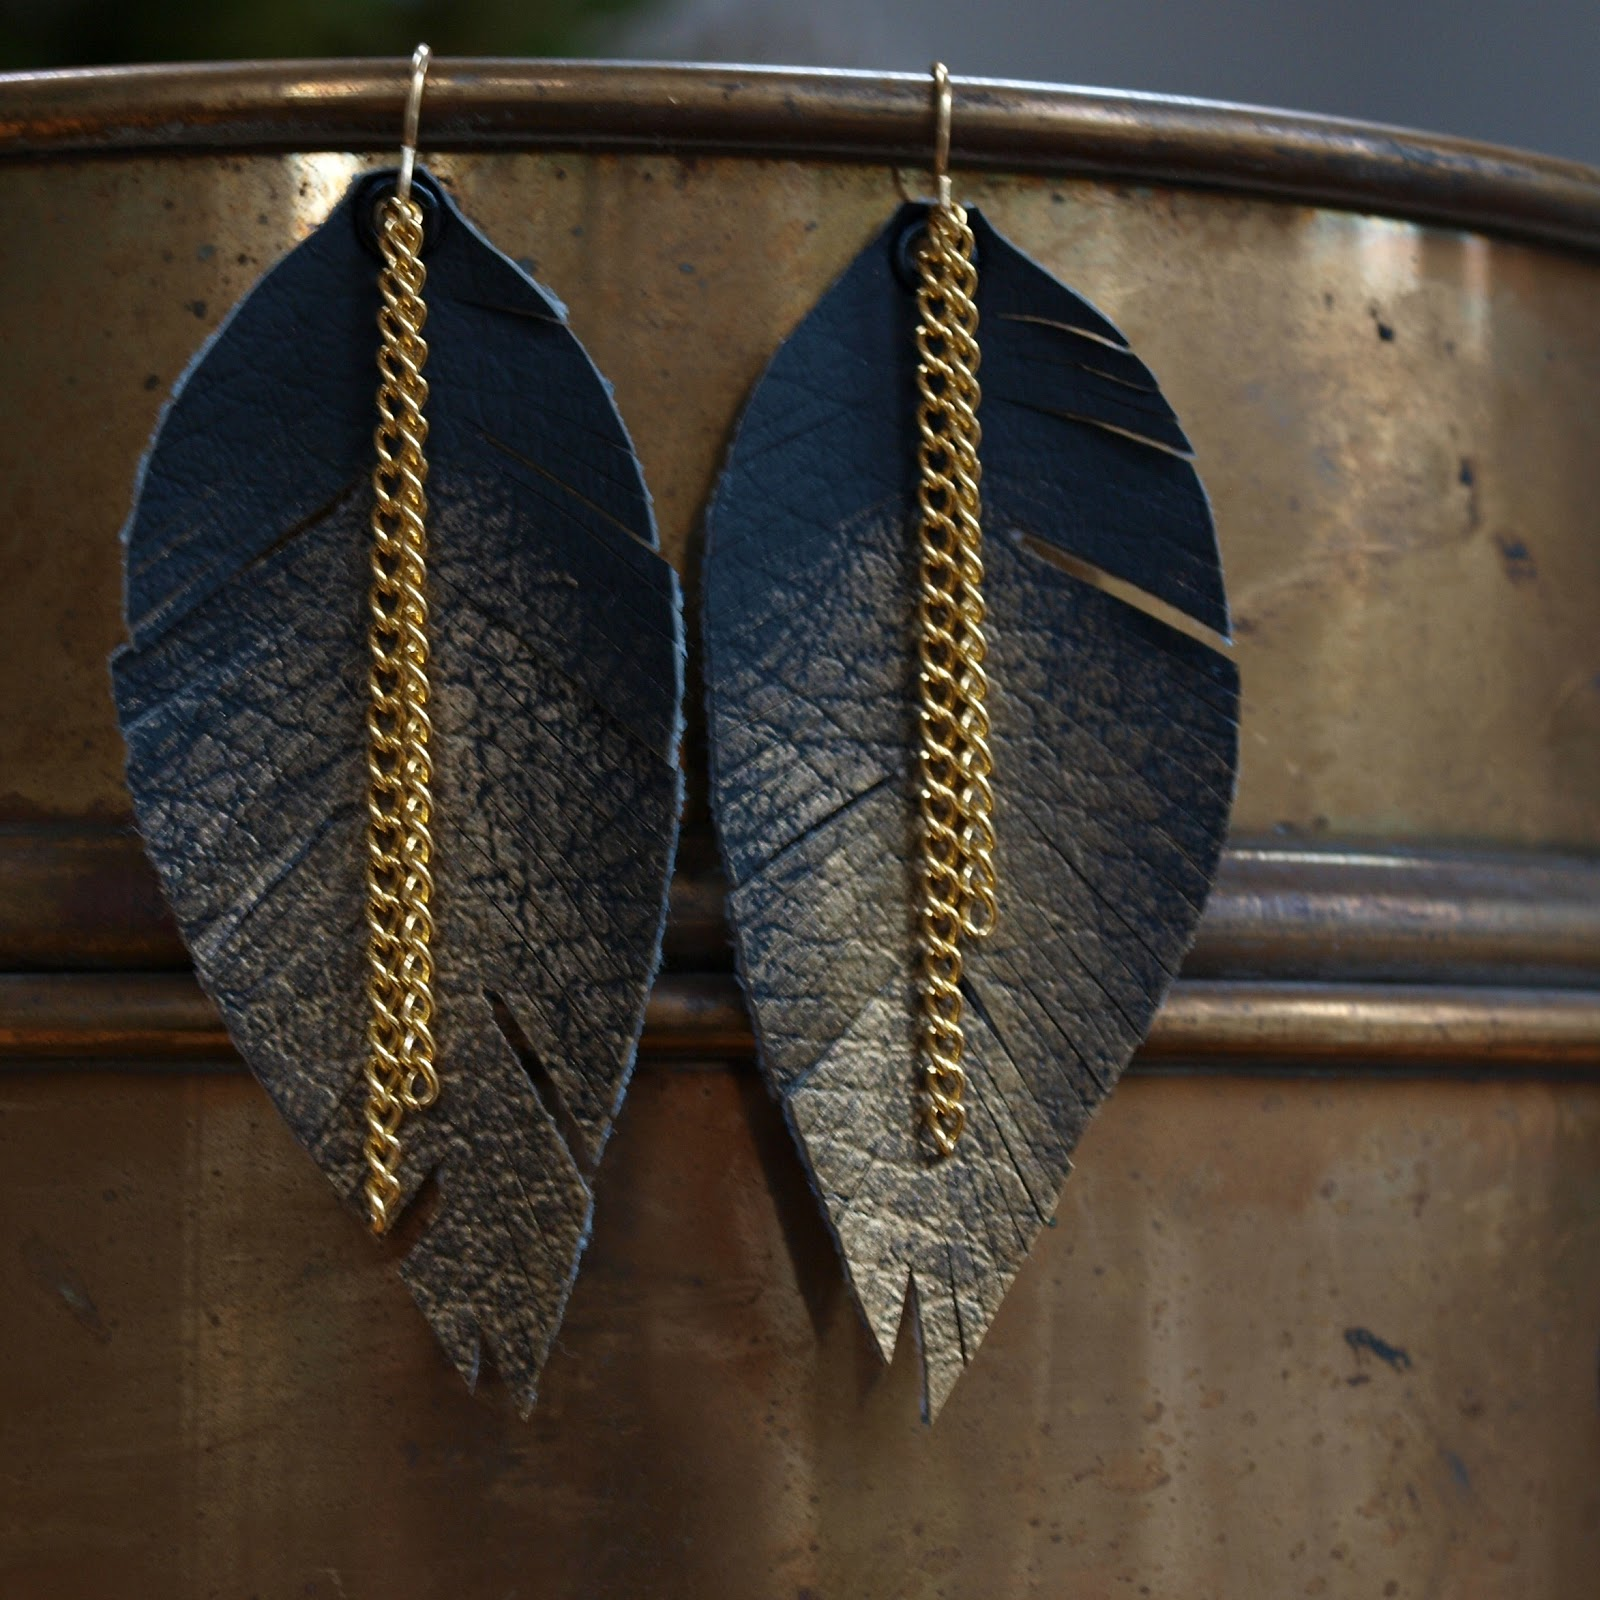 Pb Elemental Elemental Carbon Leather Amp Gold Feather Earrings Diy